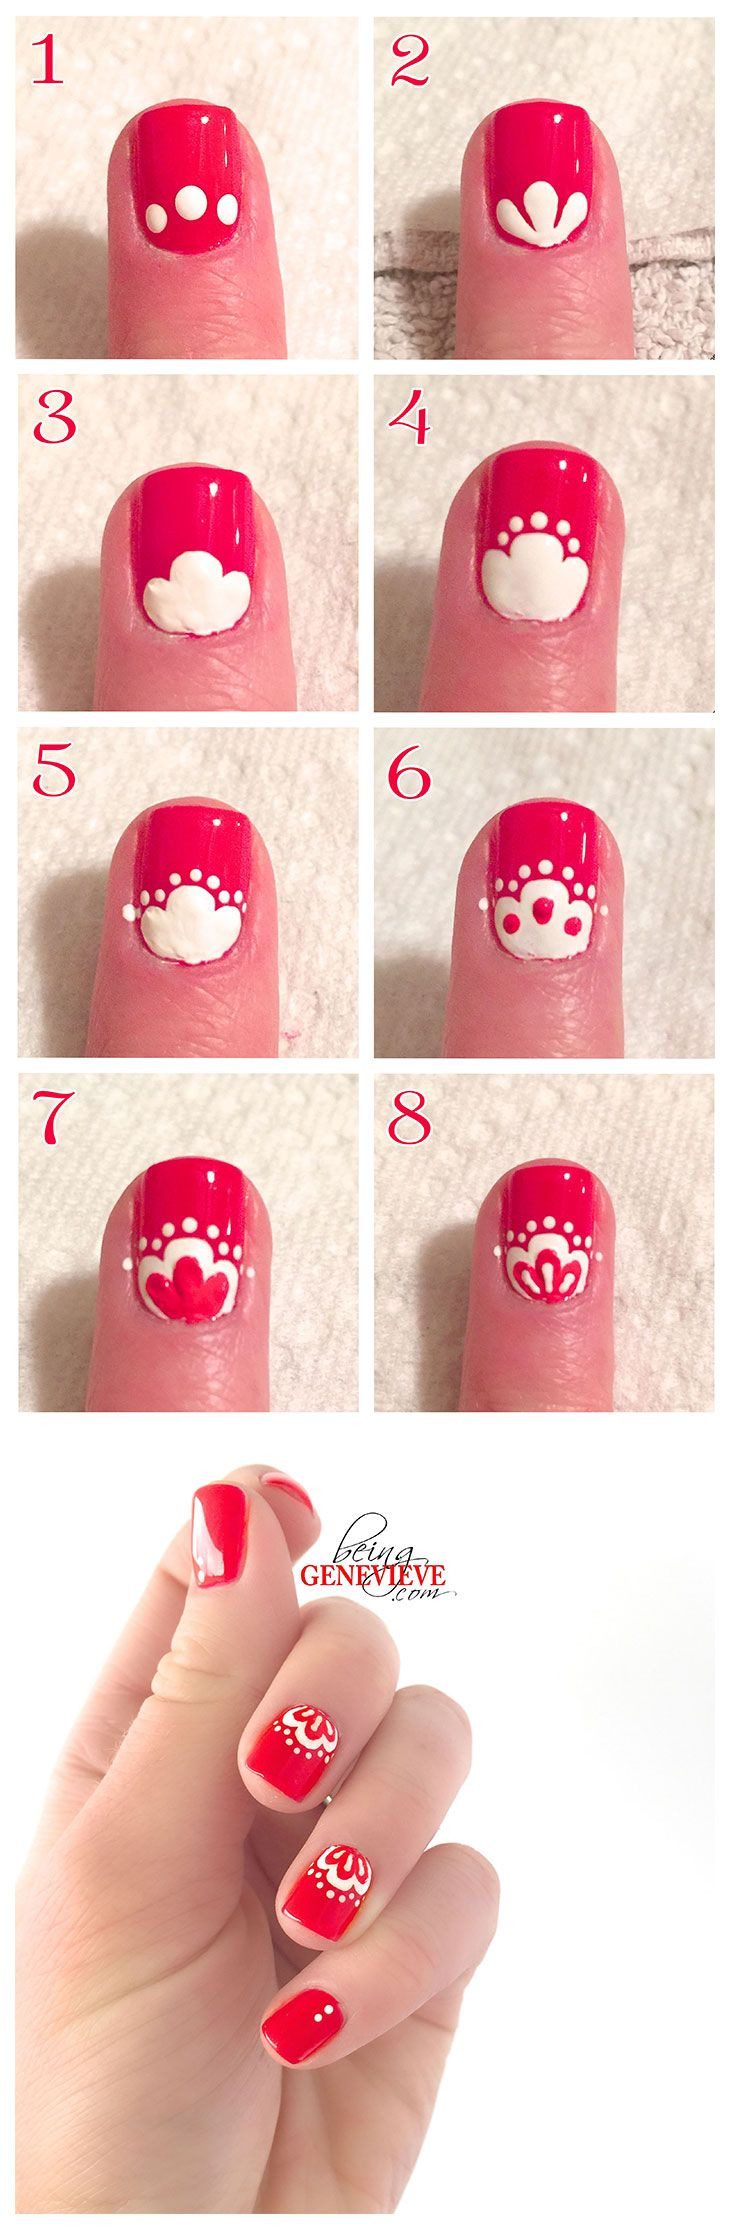 Oriental Lace Nail Art Design. Free picture step by step tutorial.